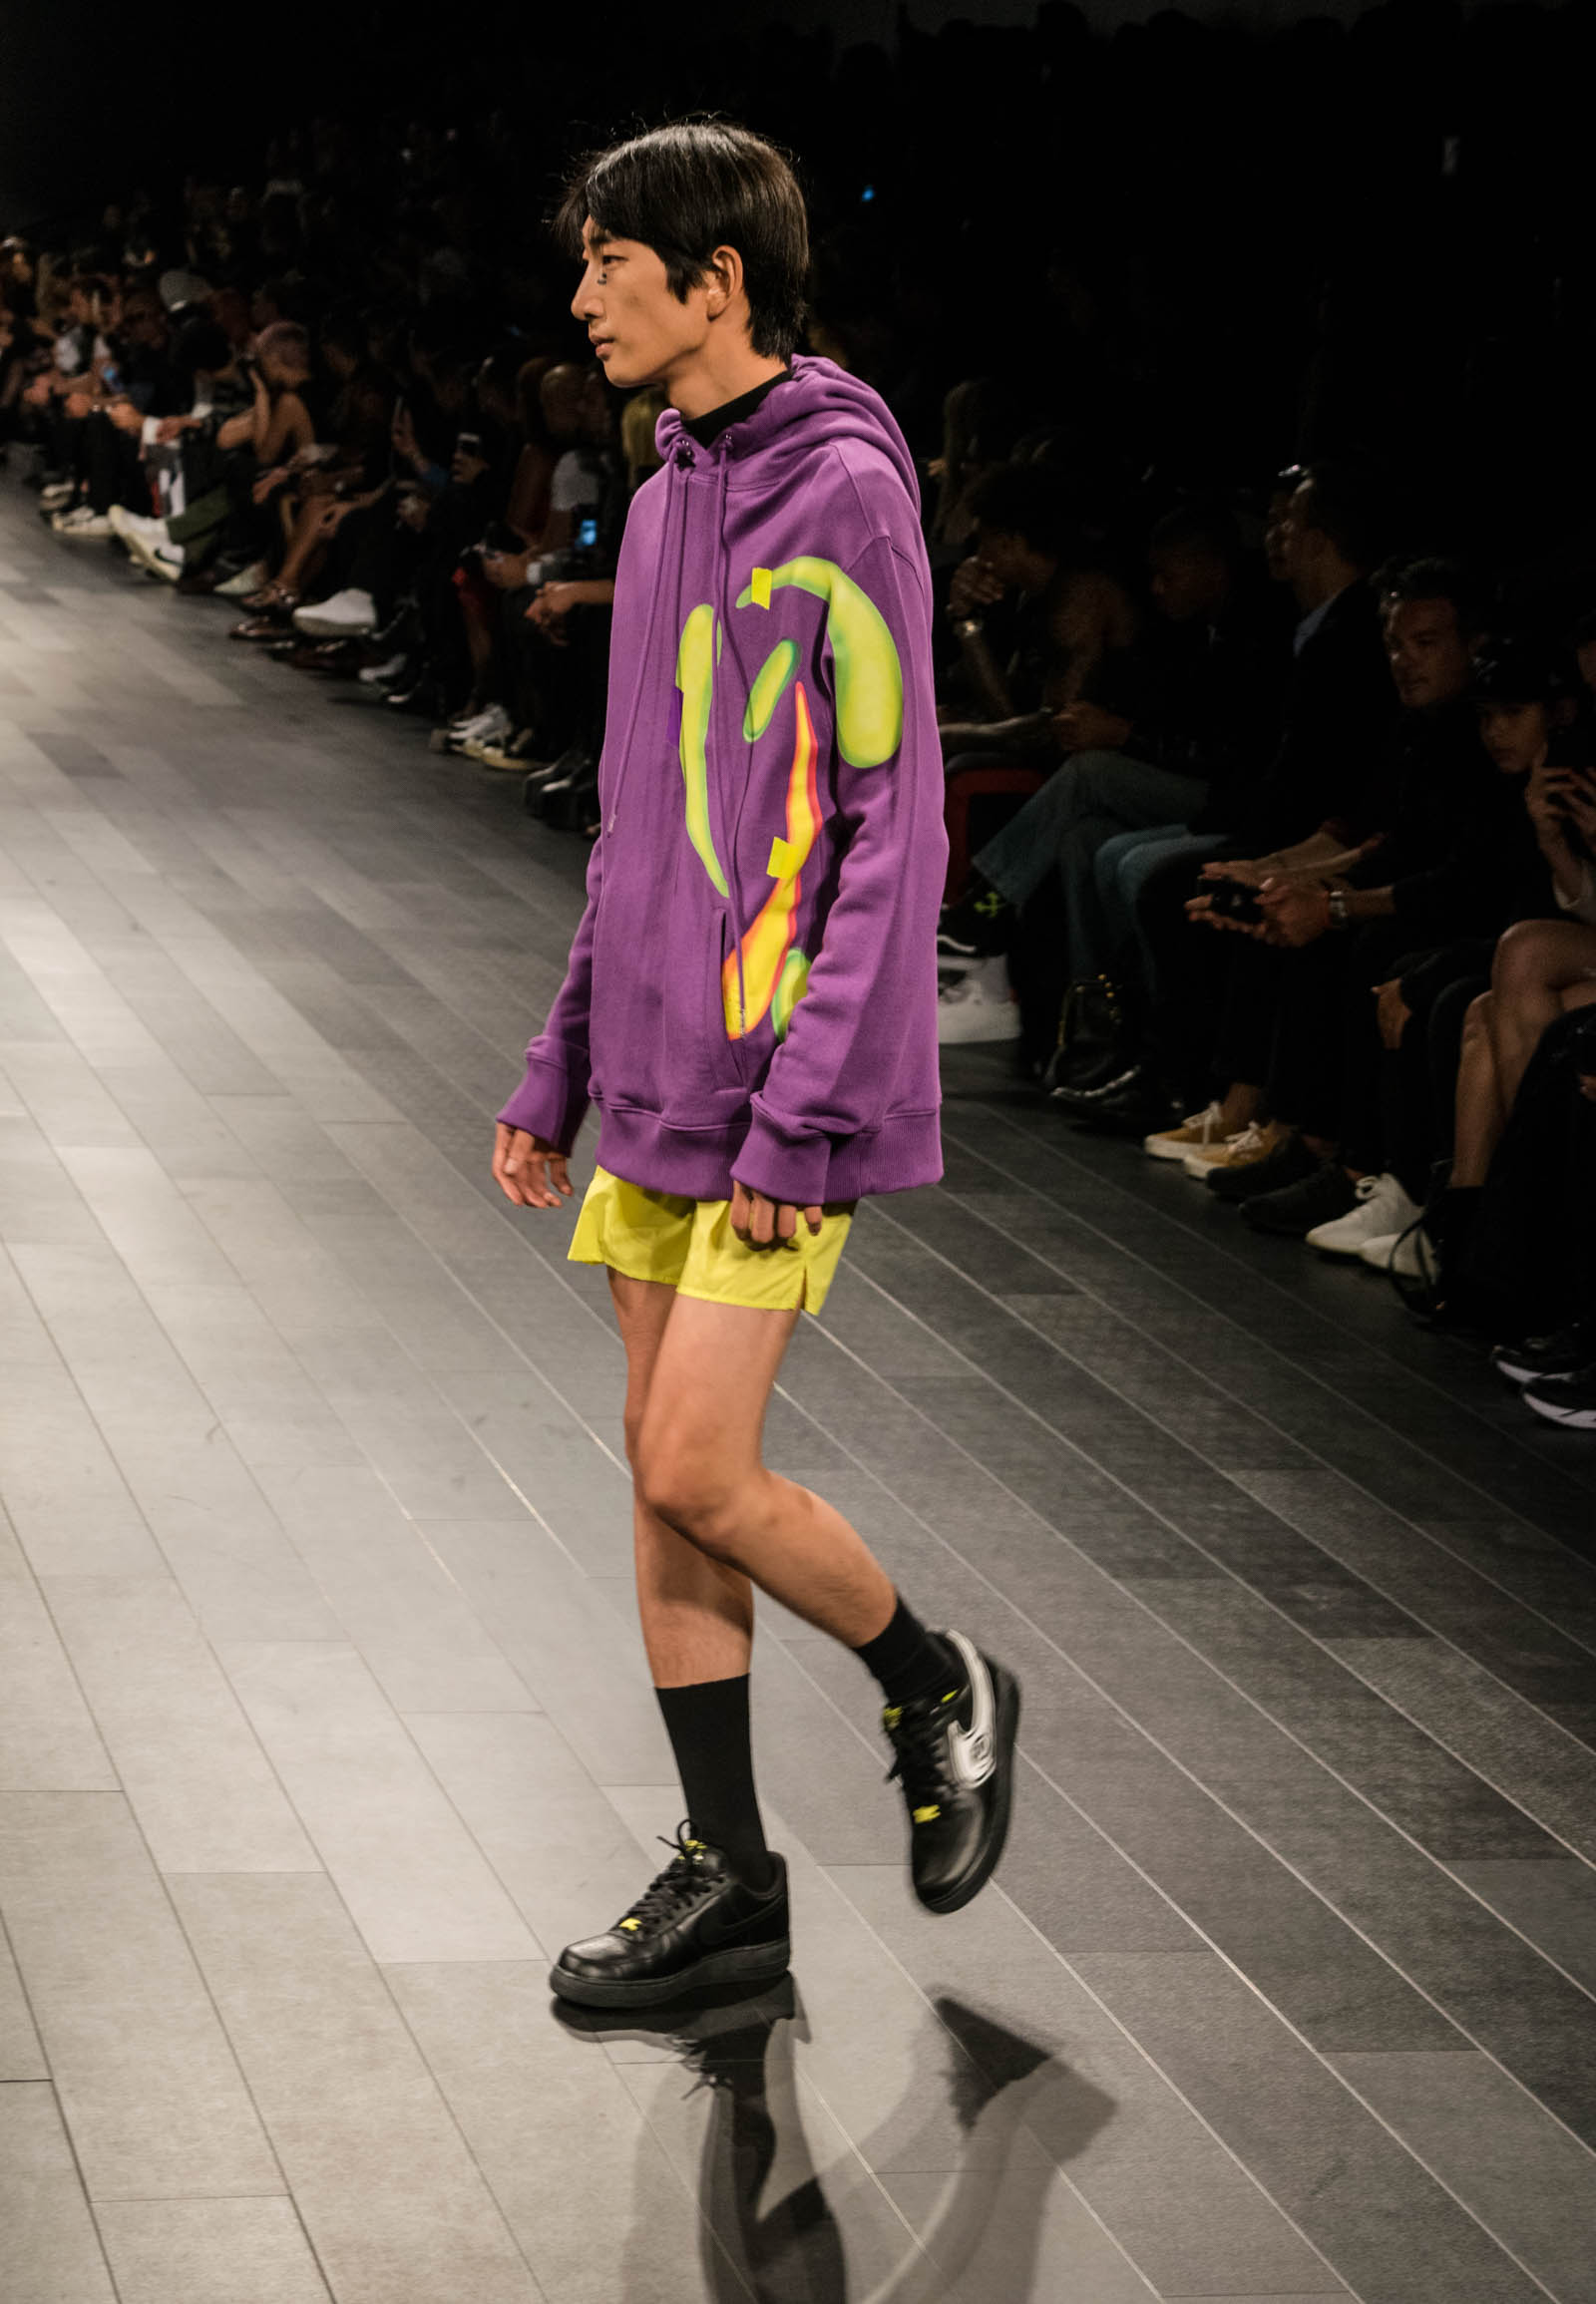 8 Rochambeau SS18 Runway Show - New York Fashion Week 2017 - FilterGrade Blog